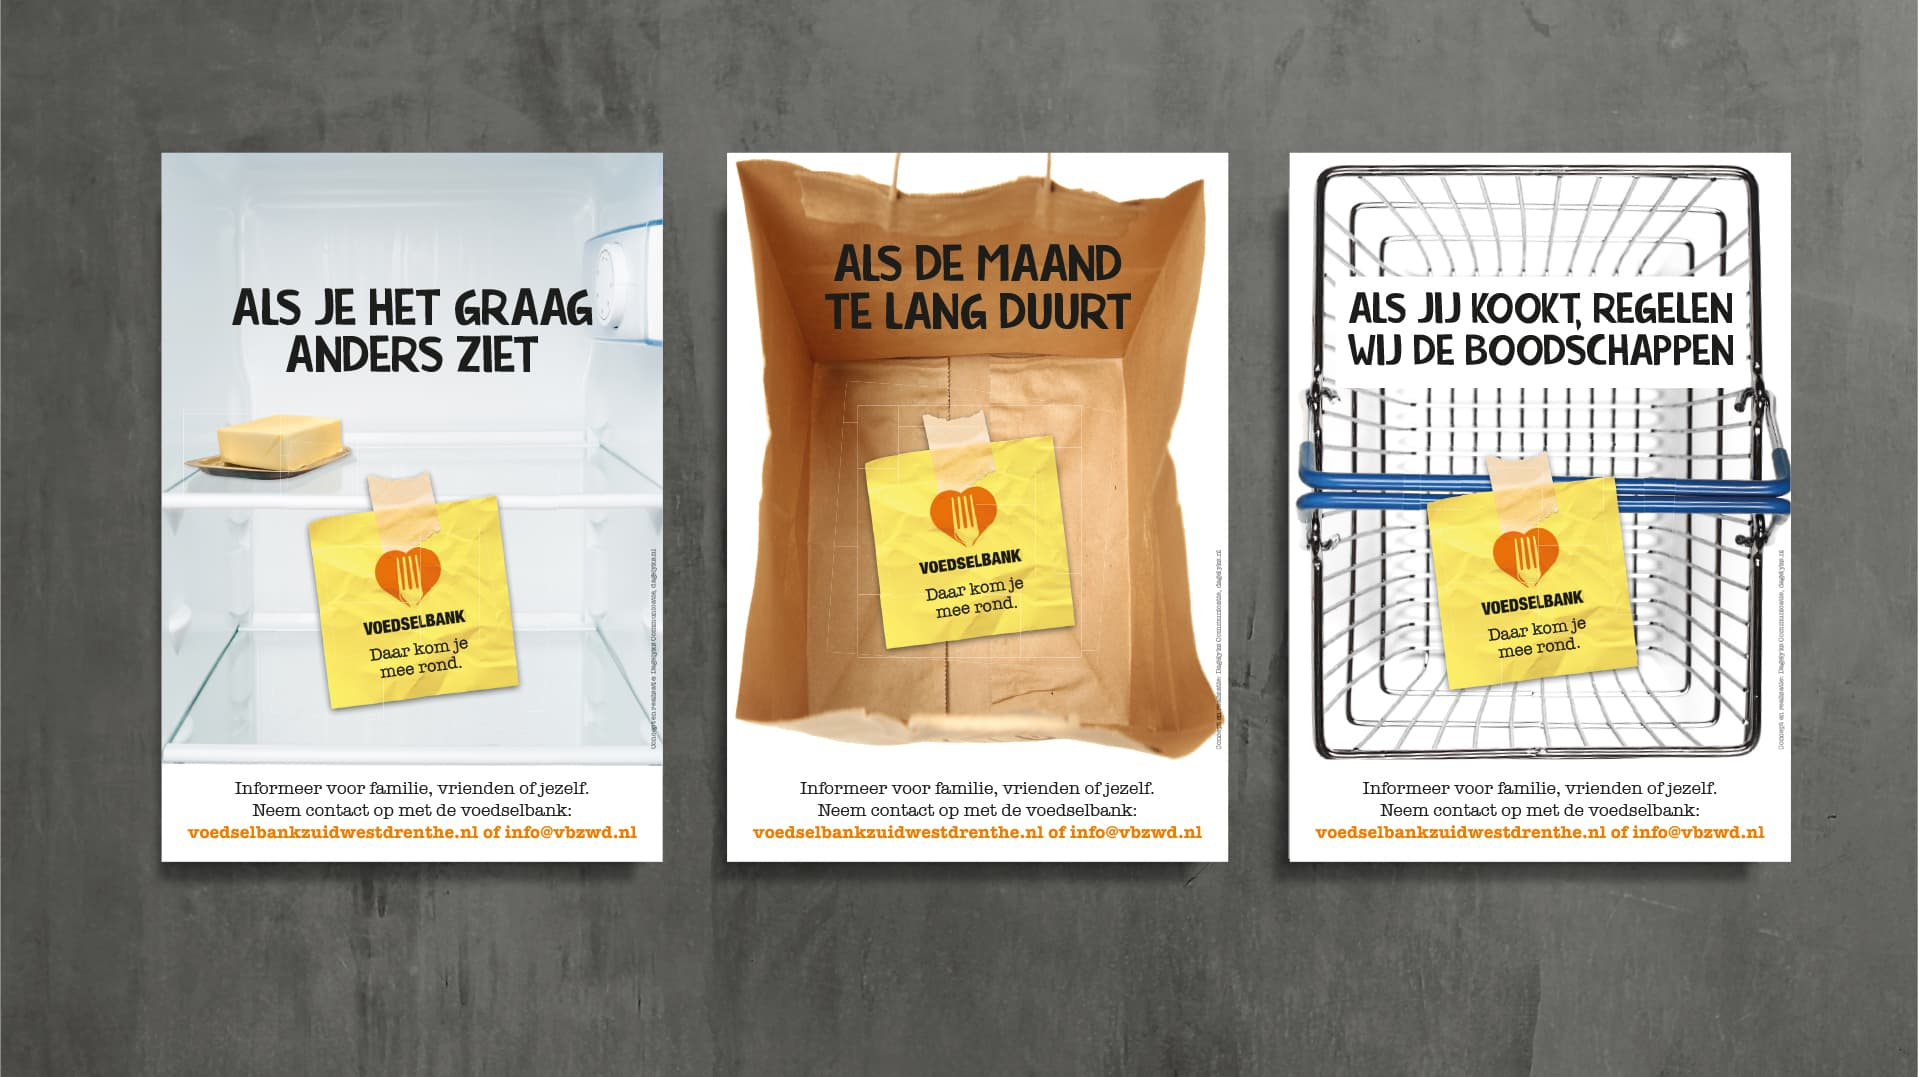 Voedselbank campagne posters reclame